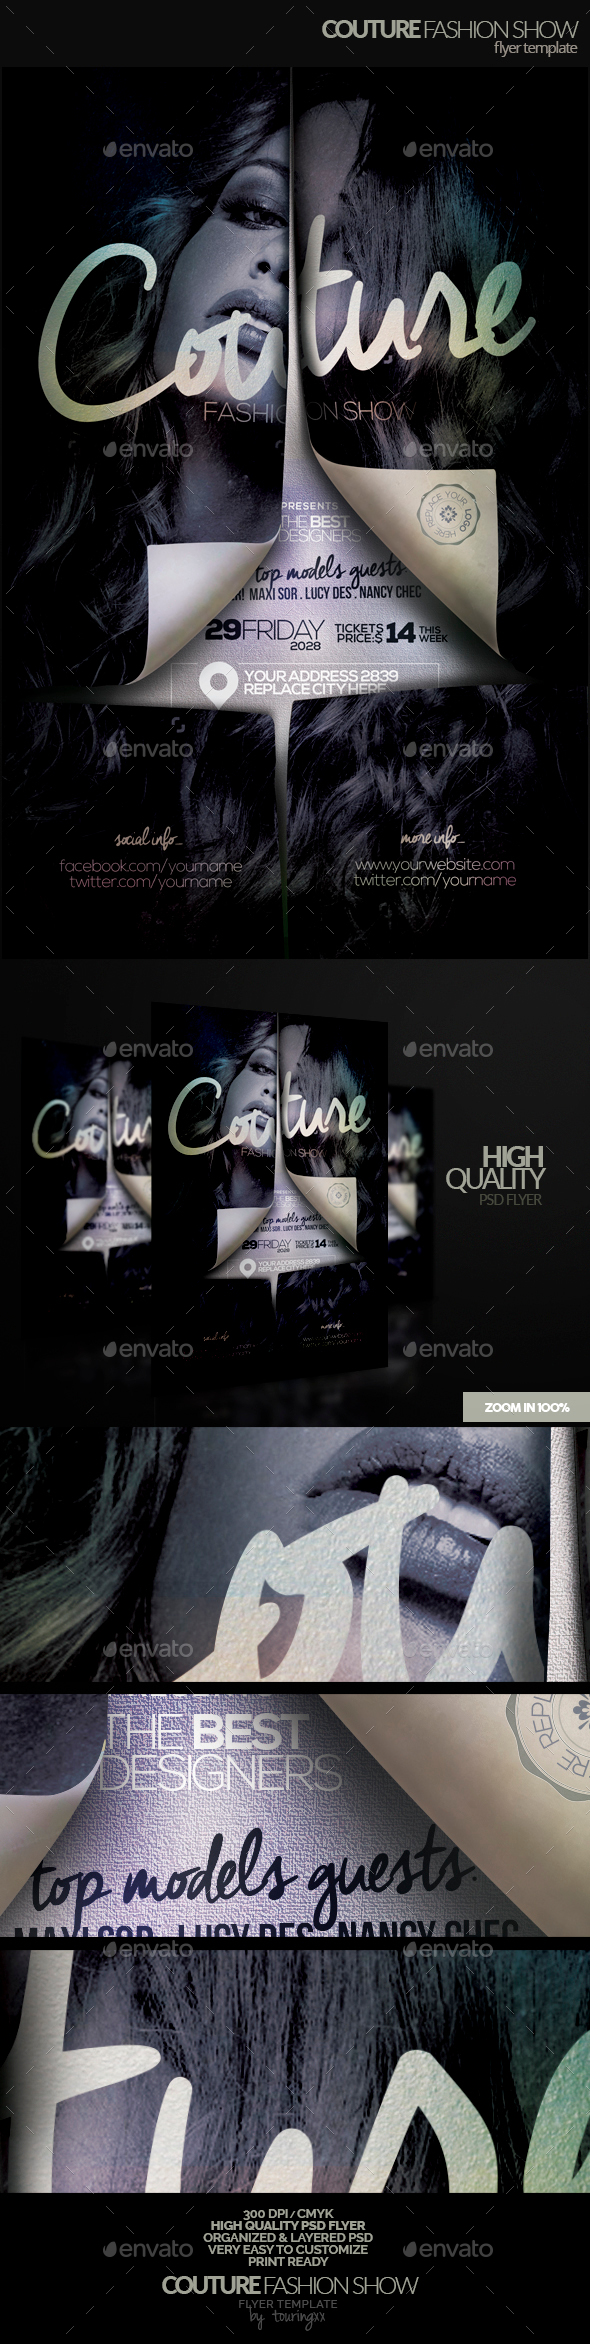 Couture Fashion Show Flyer Template - Flyers Print Templates